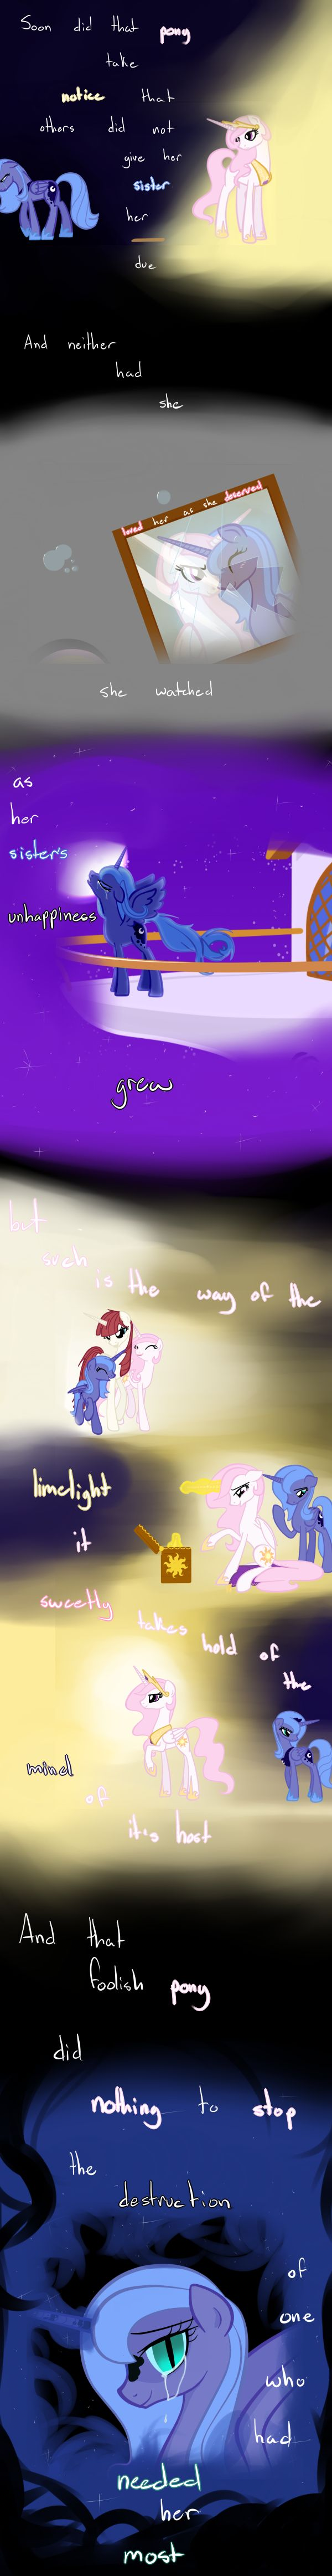 Lullaby for a Princess part 2 by RussianKolz.deviantart.com on @deviantART